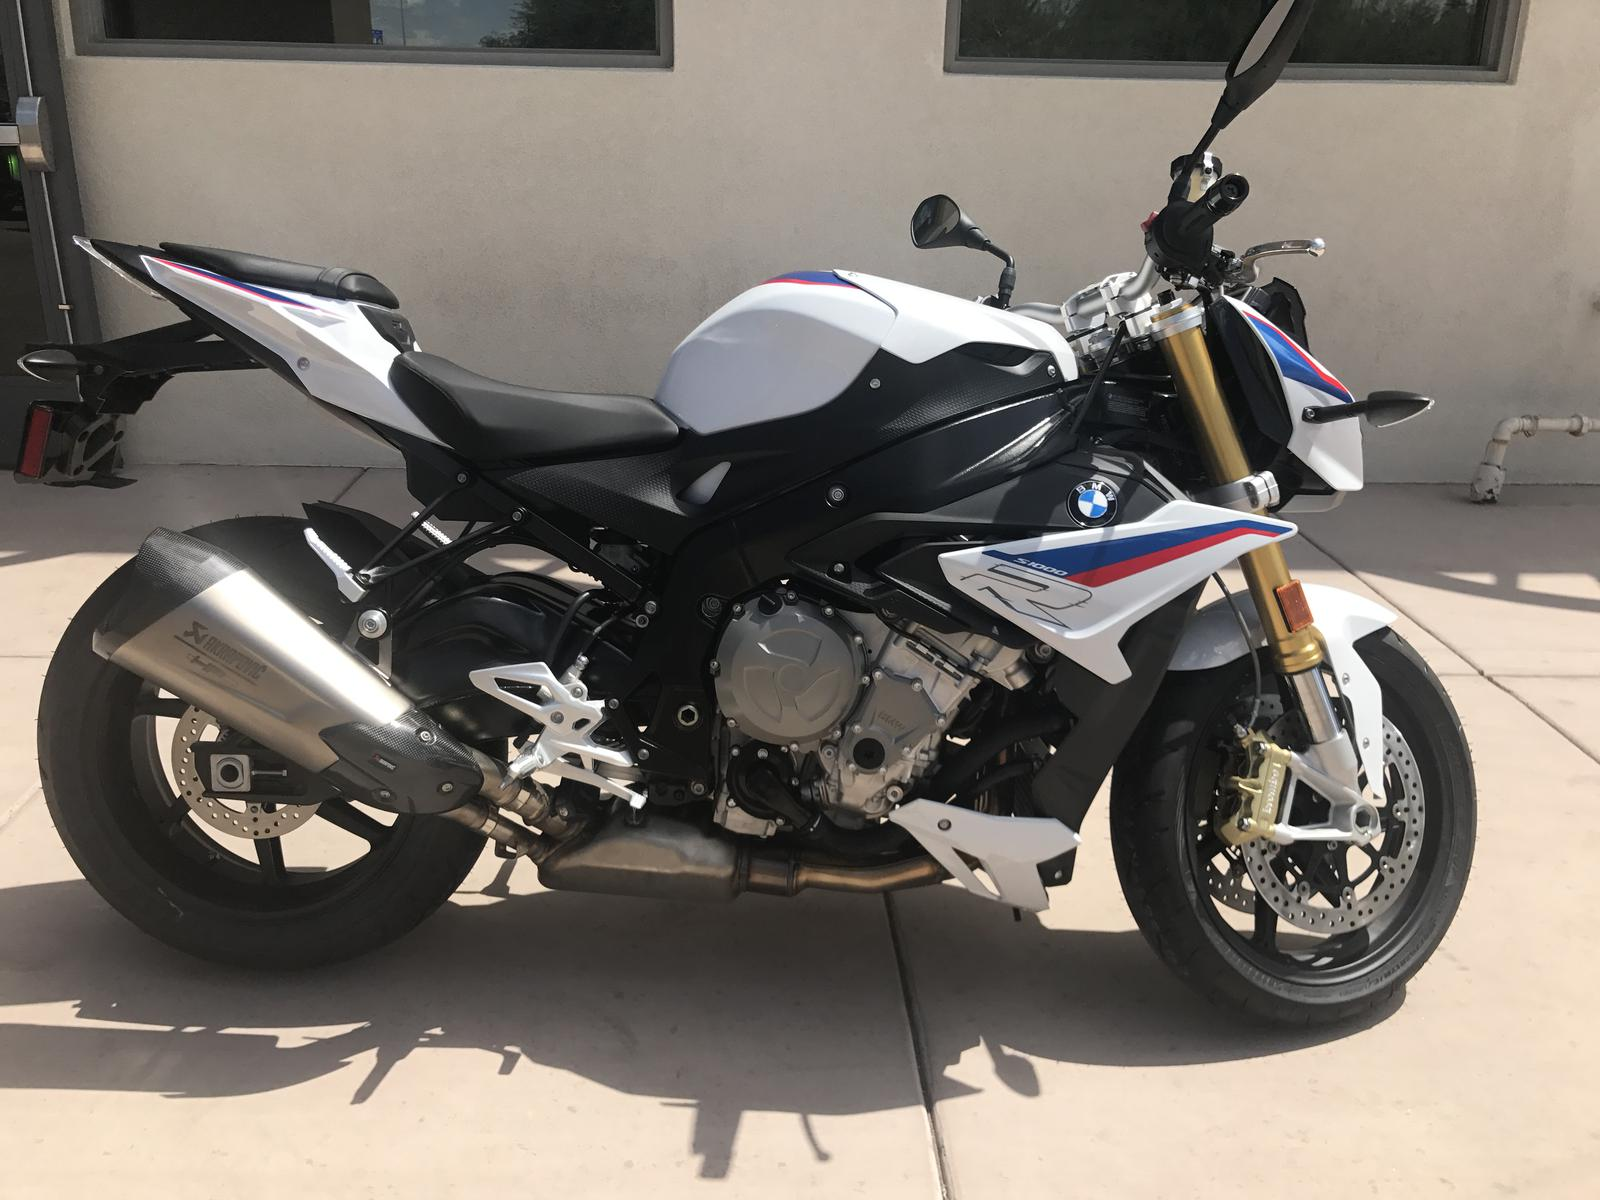 2018 Bmw S 1000 R For Sale In Peoria Az Go Az Motorcycles In